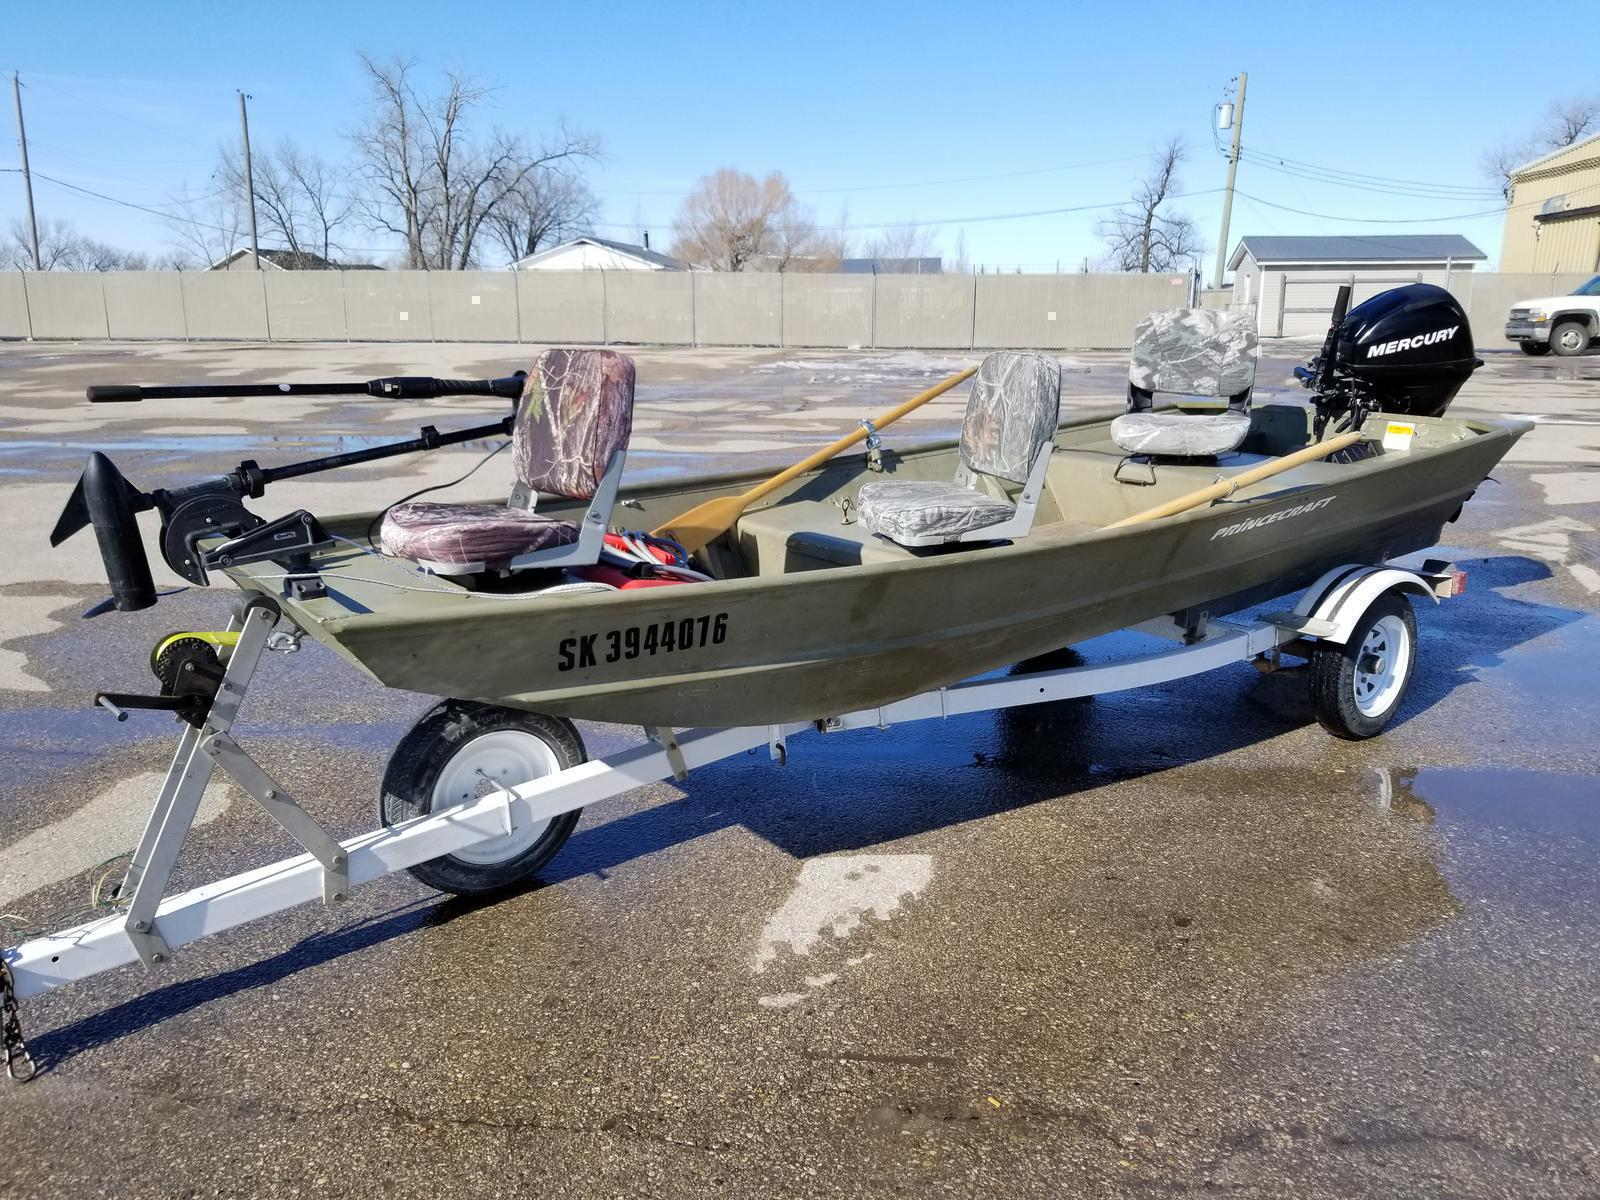 2008 Princecraft JON BOAT PR 1436! INCLUDES TRAILER, SEATS, MOTOR, AND  TROLLING MOTOR! CAN BE WATER TESTED!